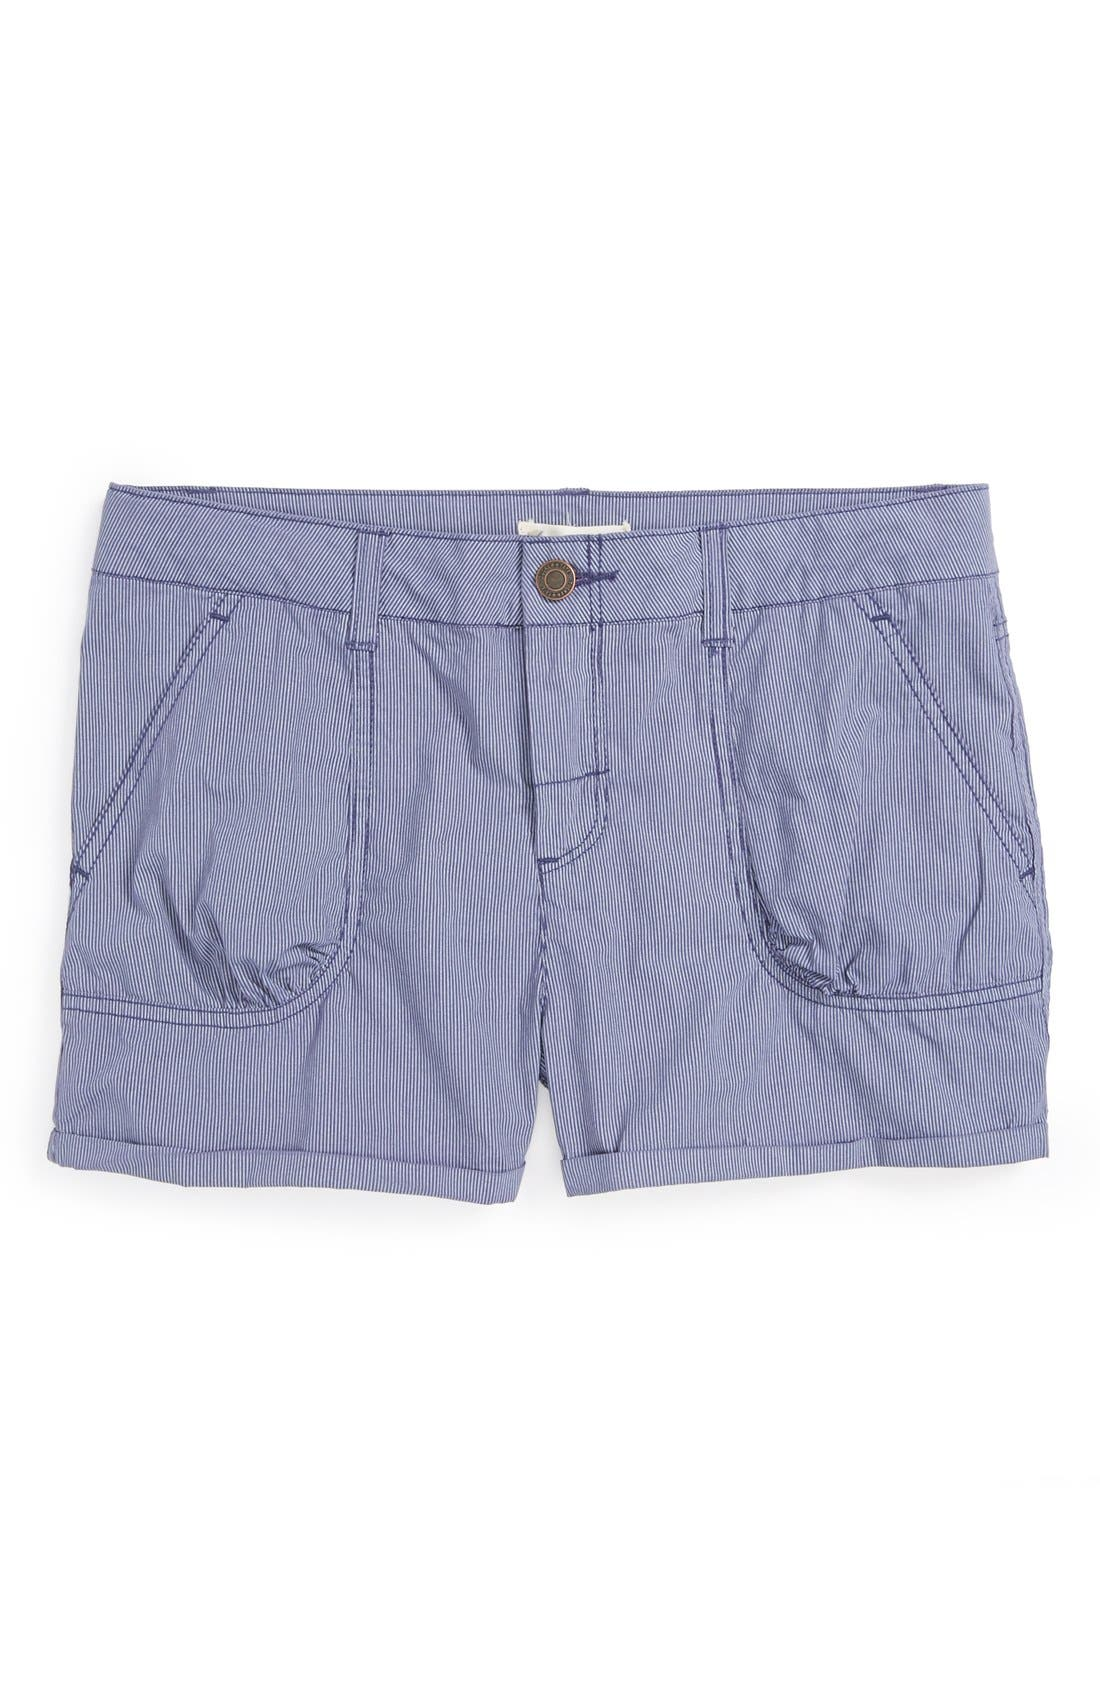 Main Image - Tucker + Tate 'Mindy' Shorts (Big Girls)